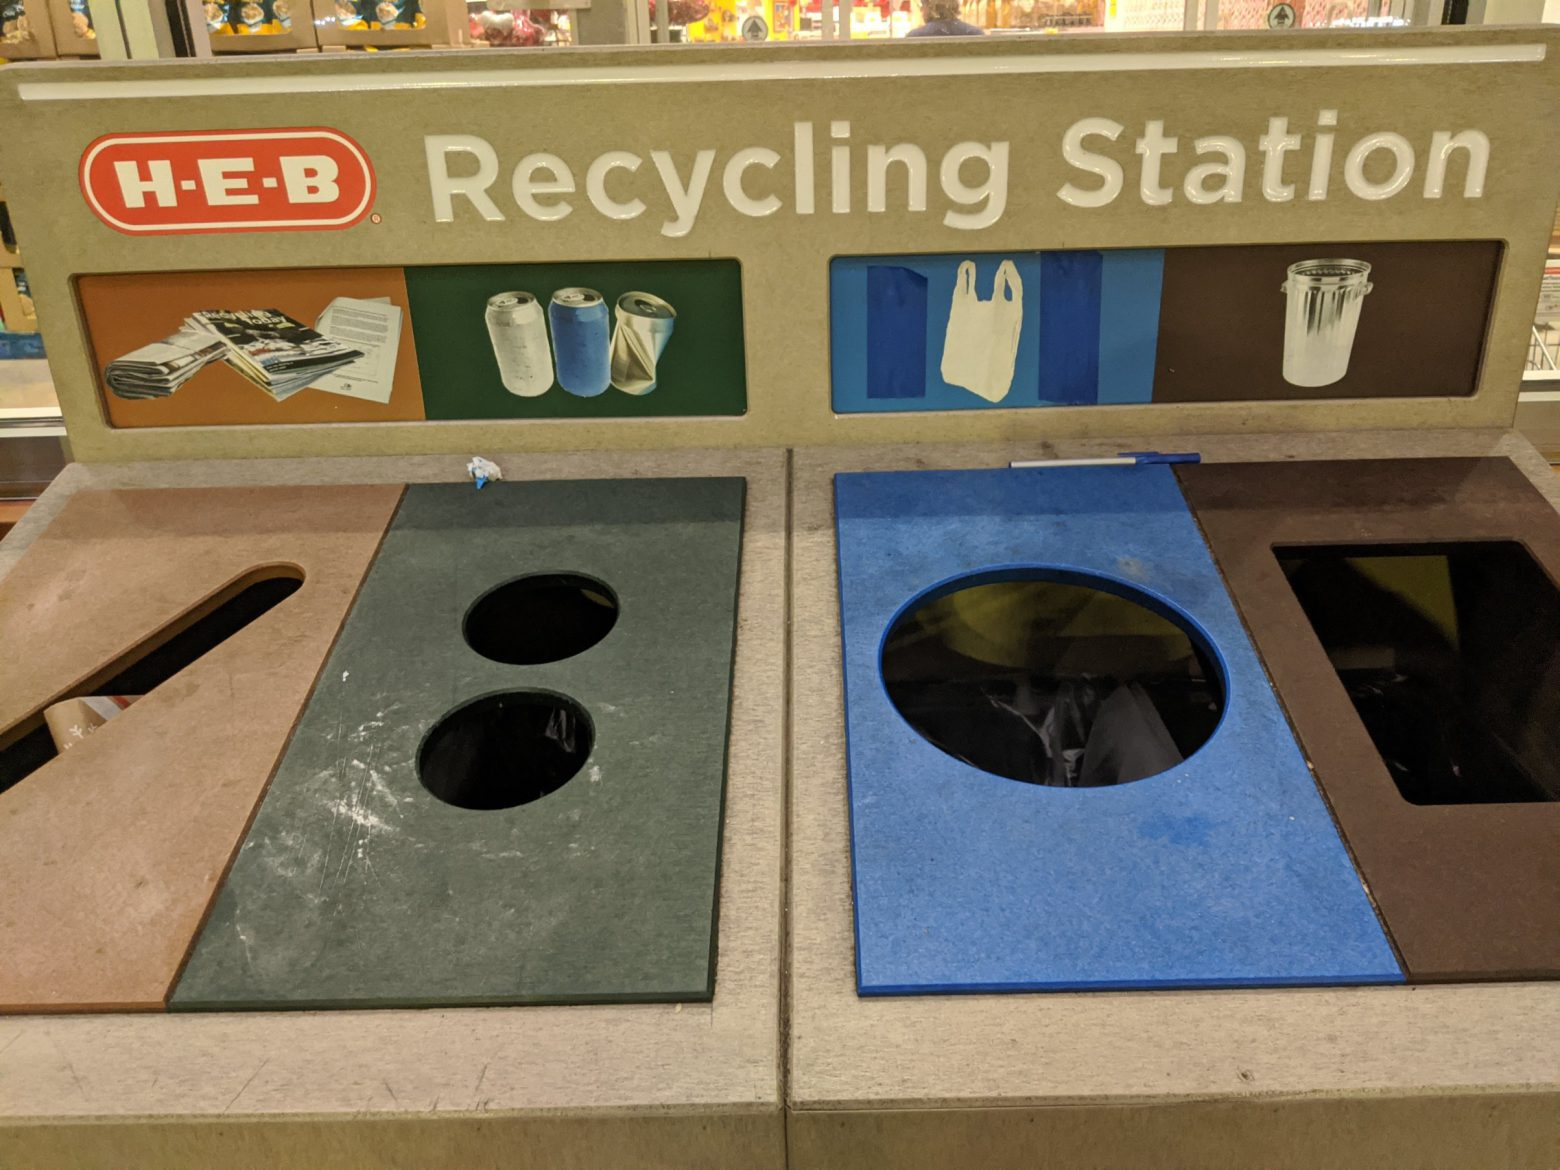 HEB Recycling Station